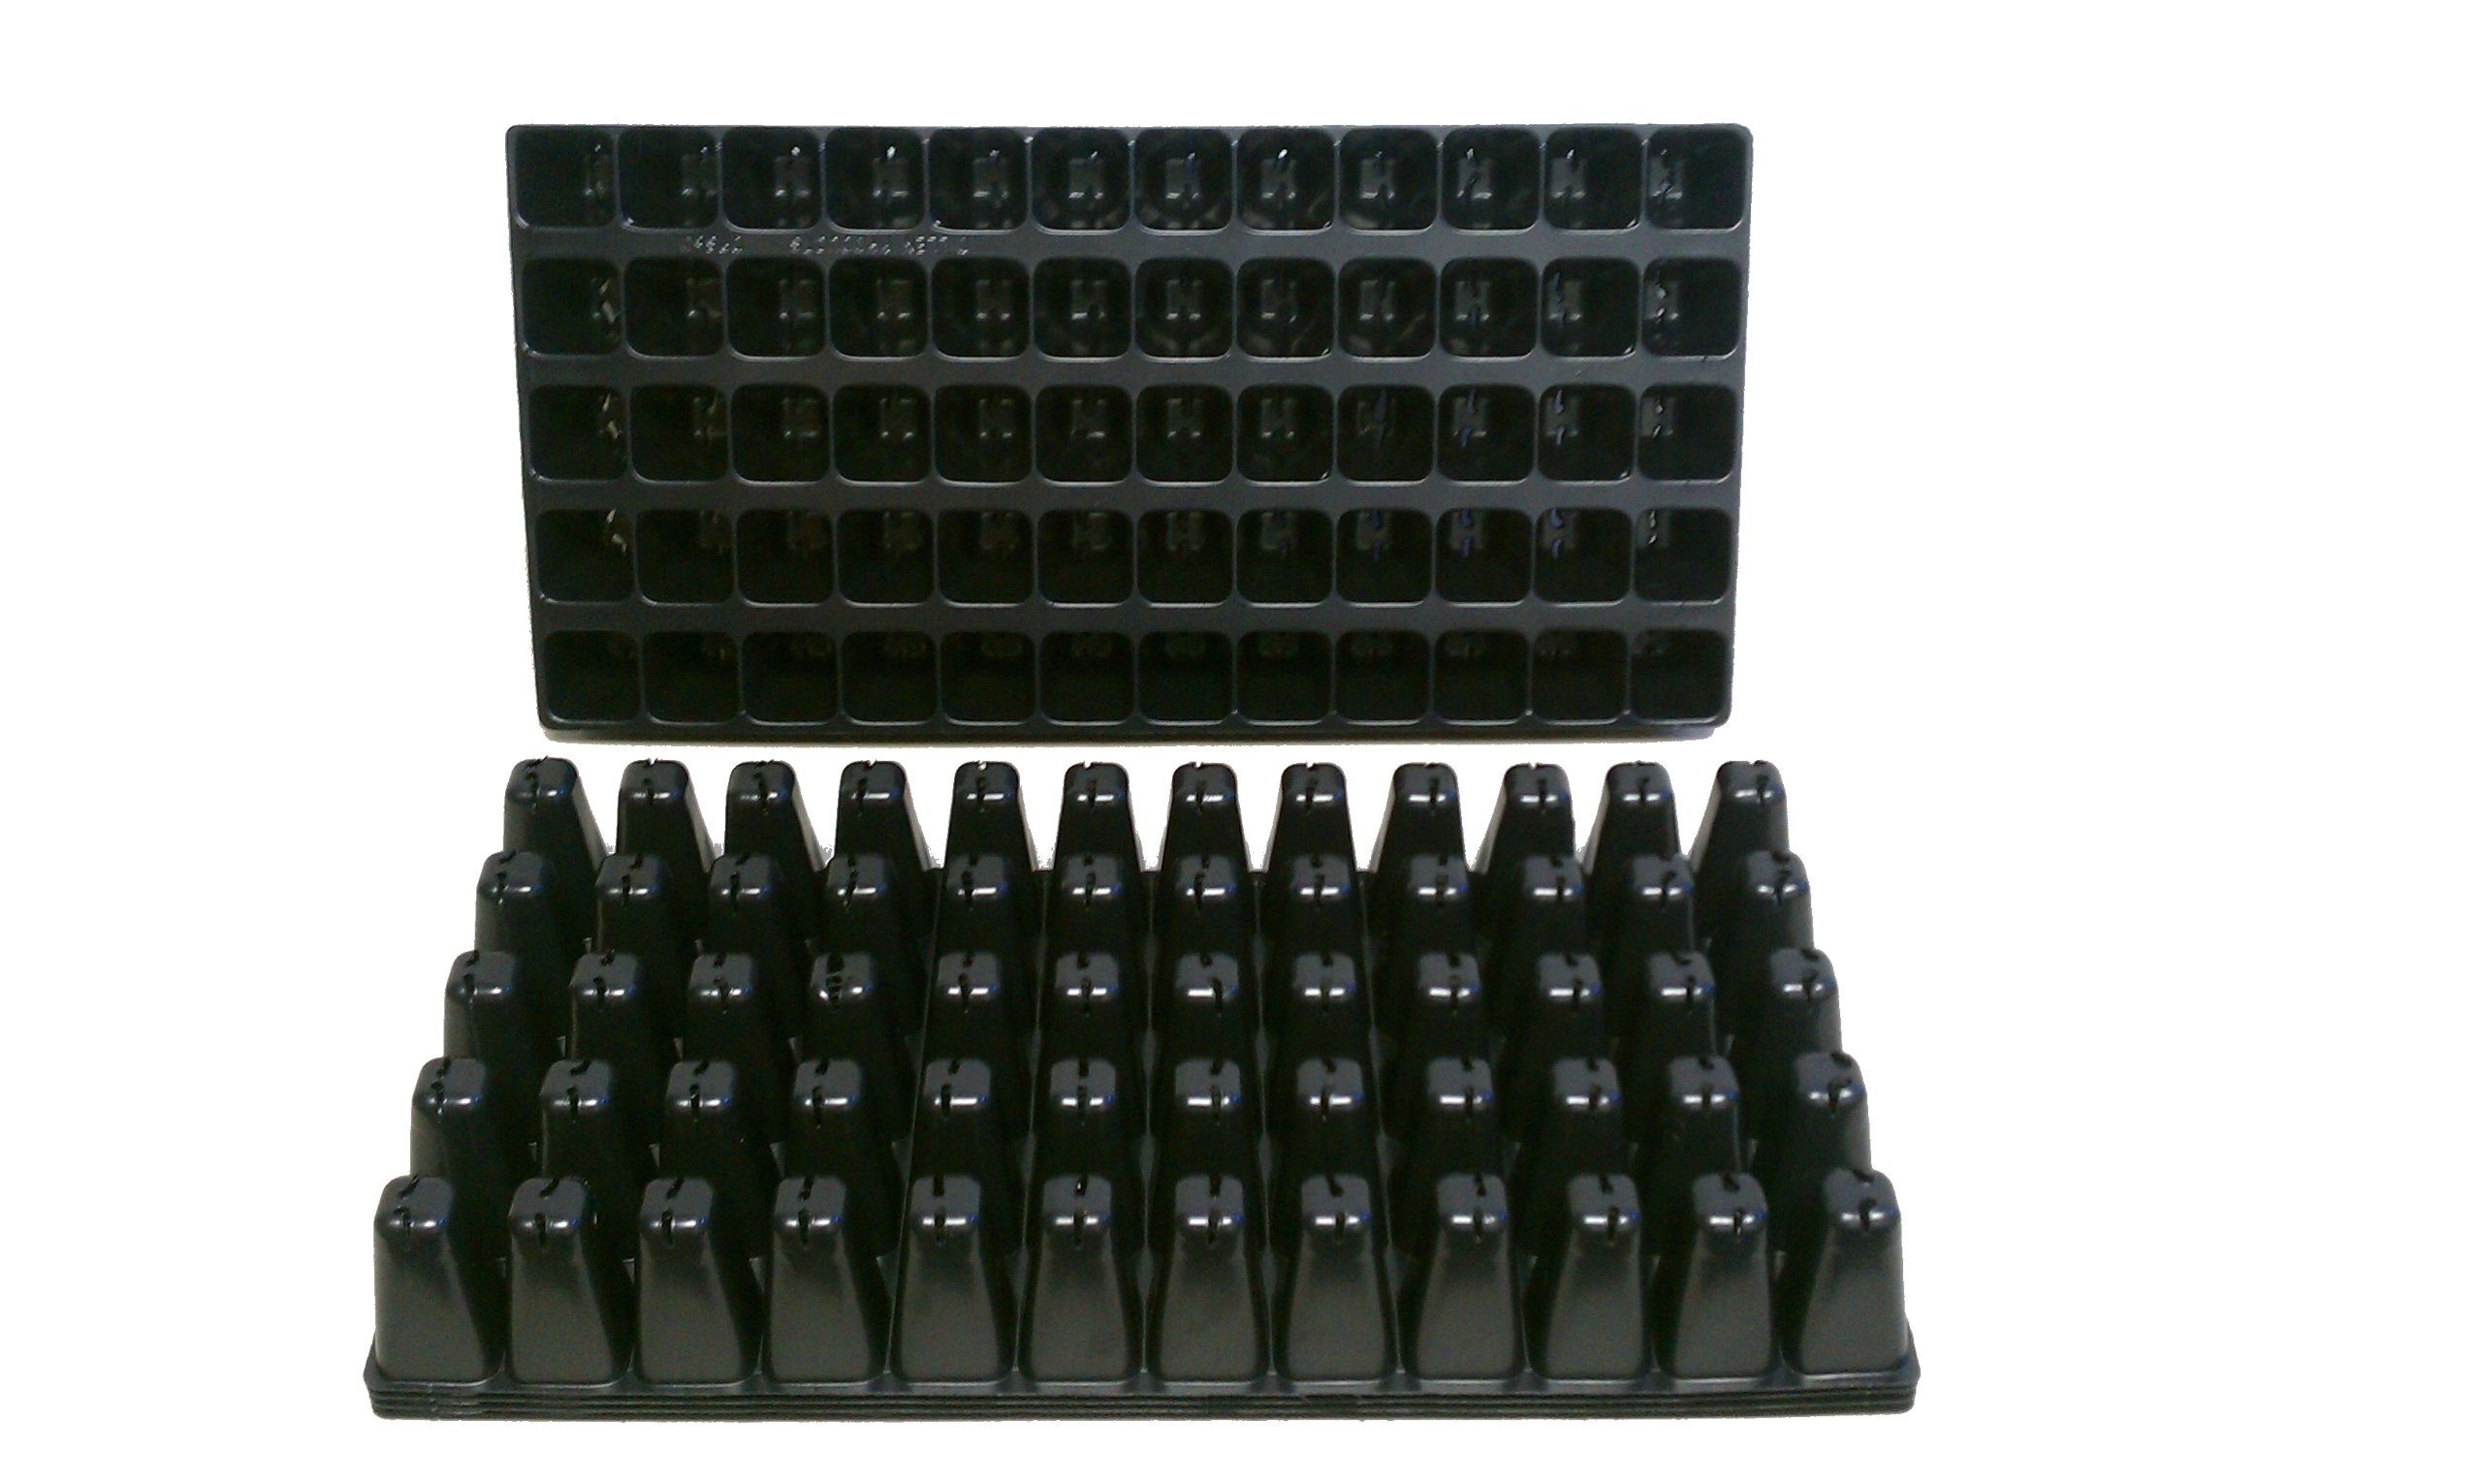 10 Plastic Seed Starting Trays - Each Tray Has 60 Cells ~ Cells Are 1 5/8'' Square X 2 6/8'' Deep. Great Propagation Trays